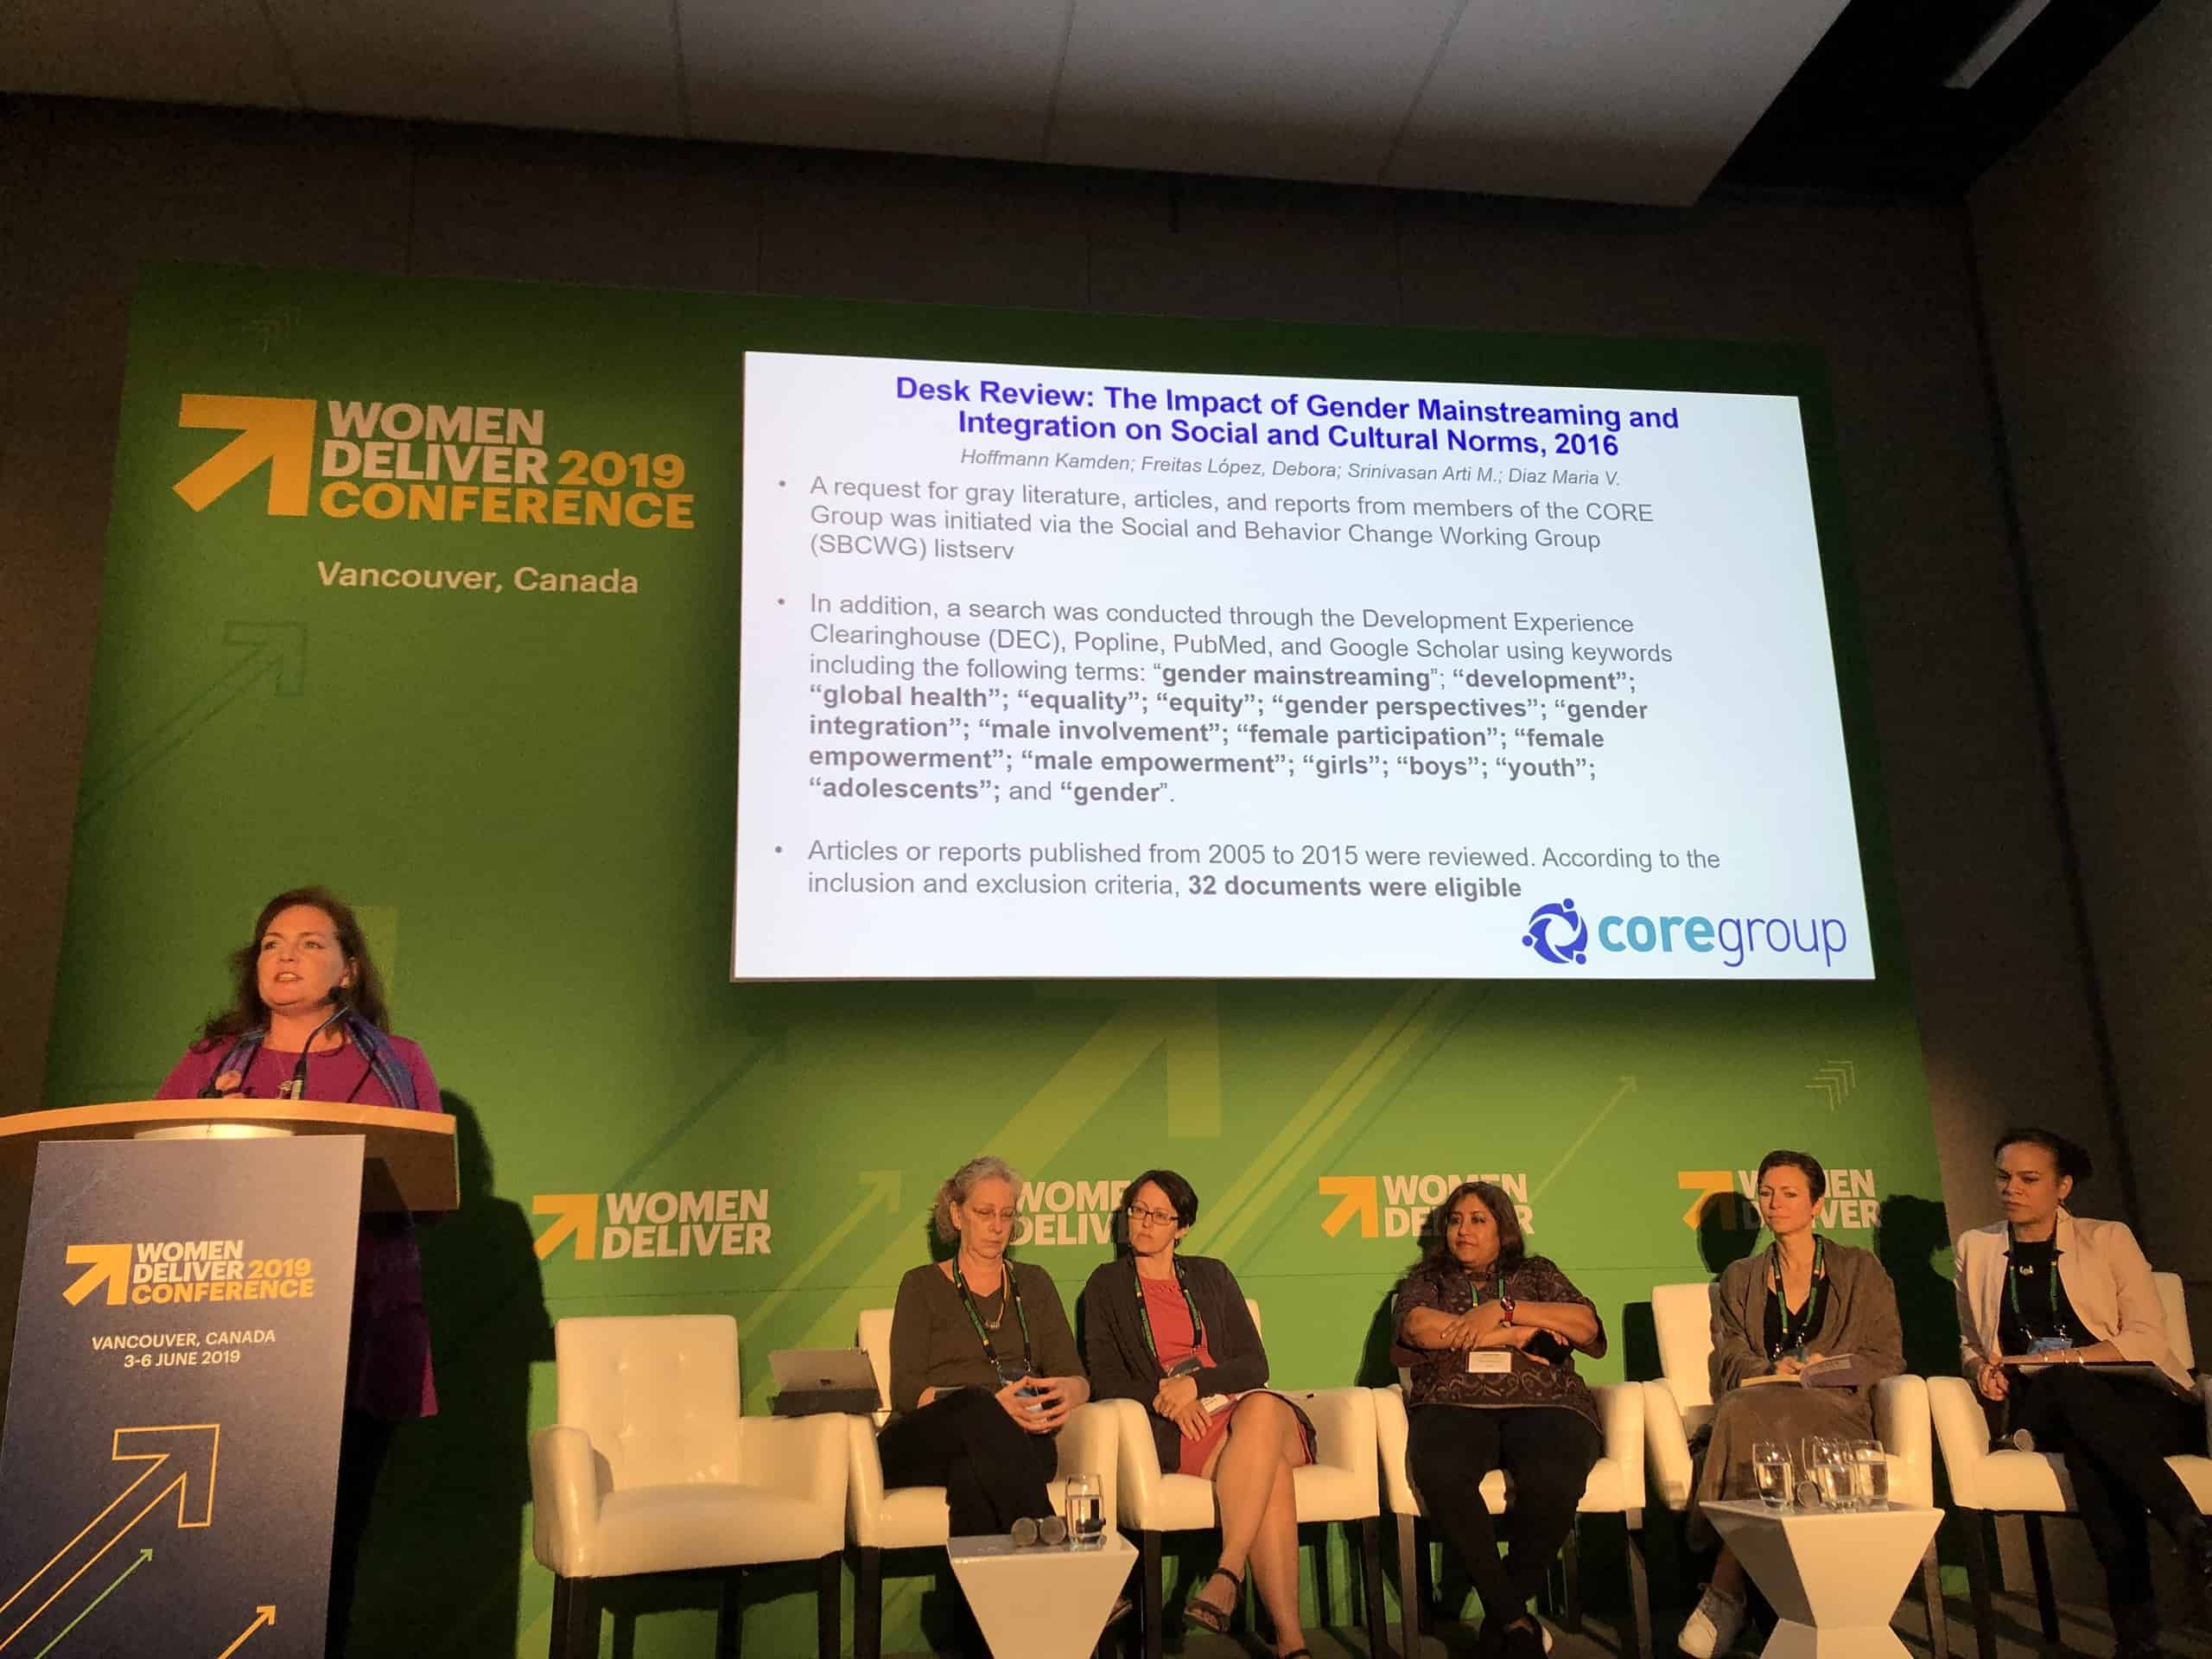 Lisa Hilmi speaking at WD2019